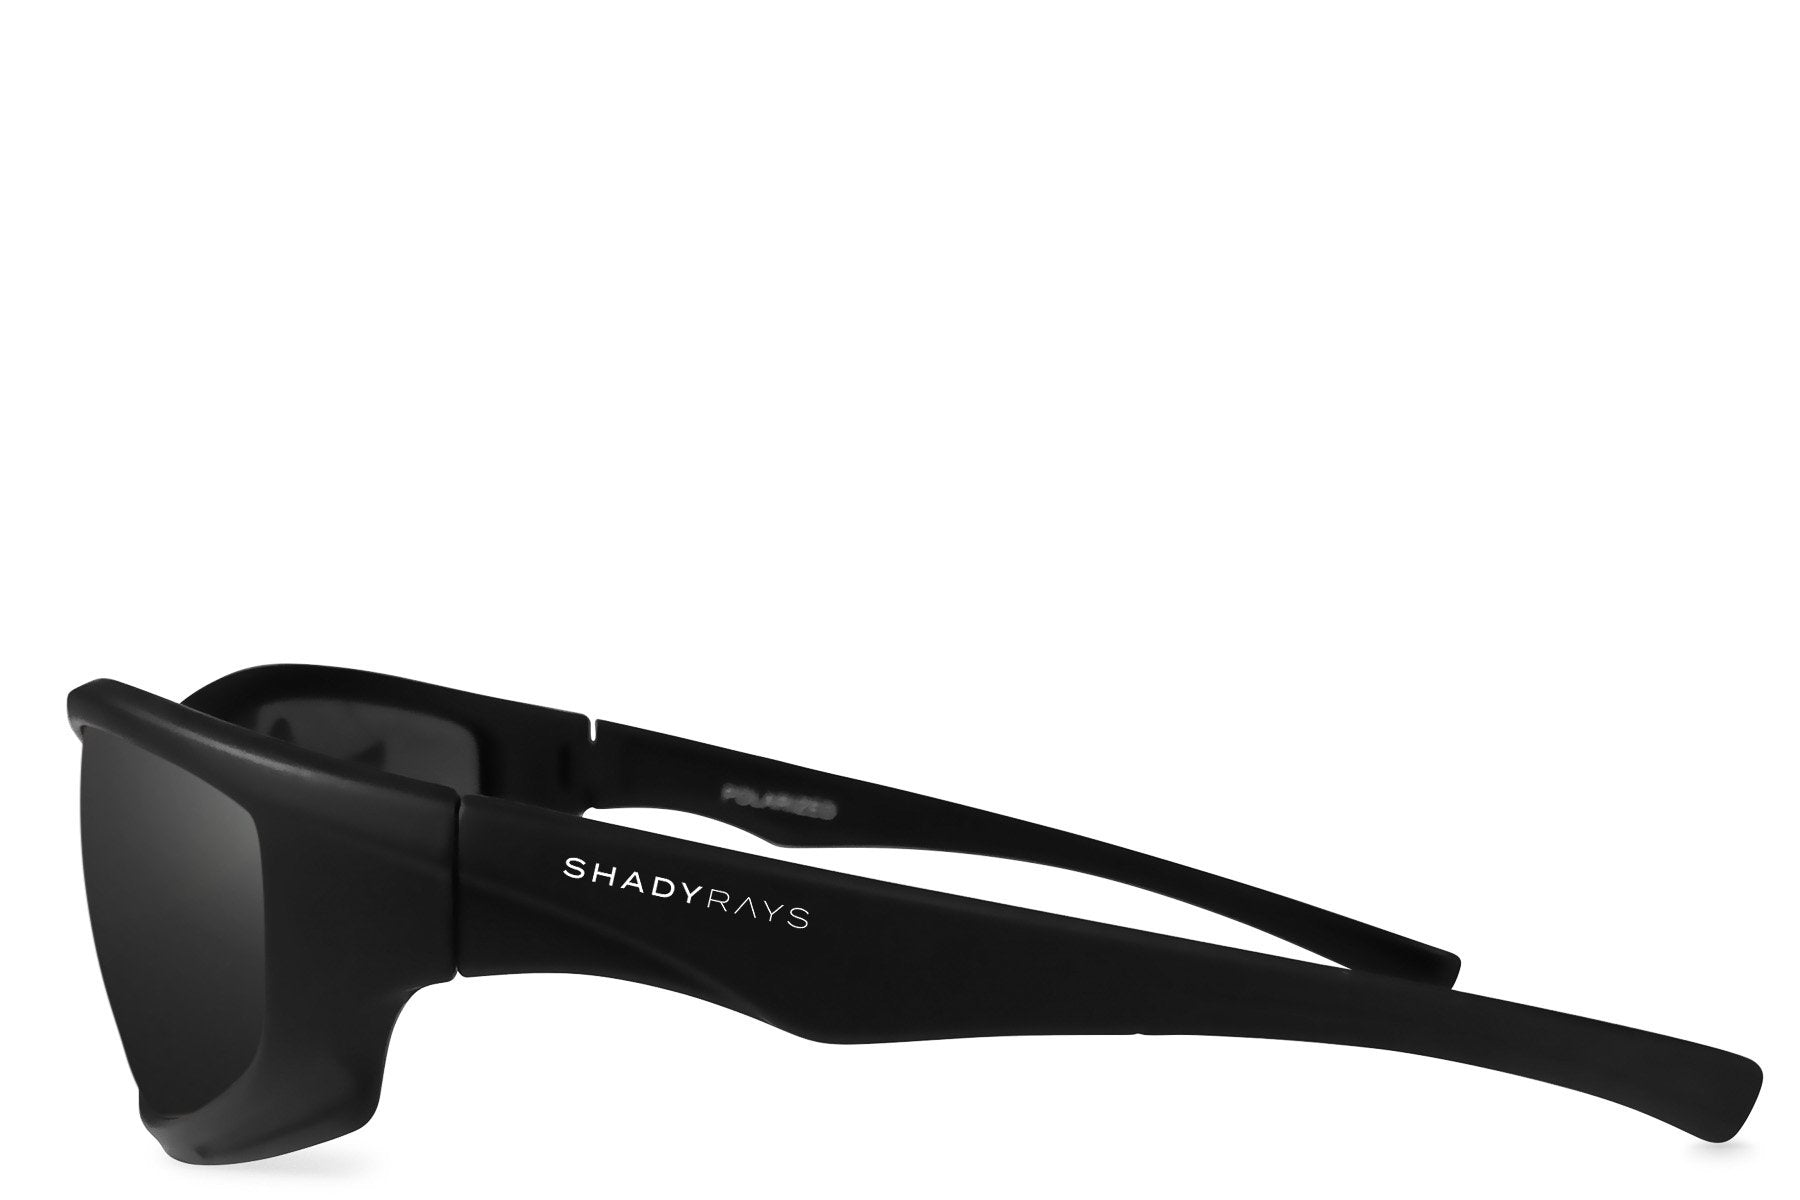 90df2c4f12e88 Shady Rays X Series - Blackout Polarized Sunglasses – Shady Rays ...